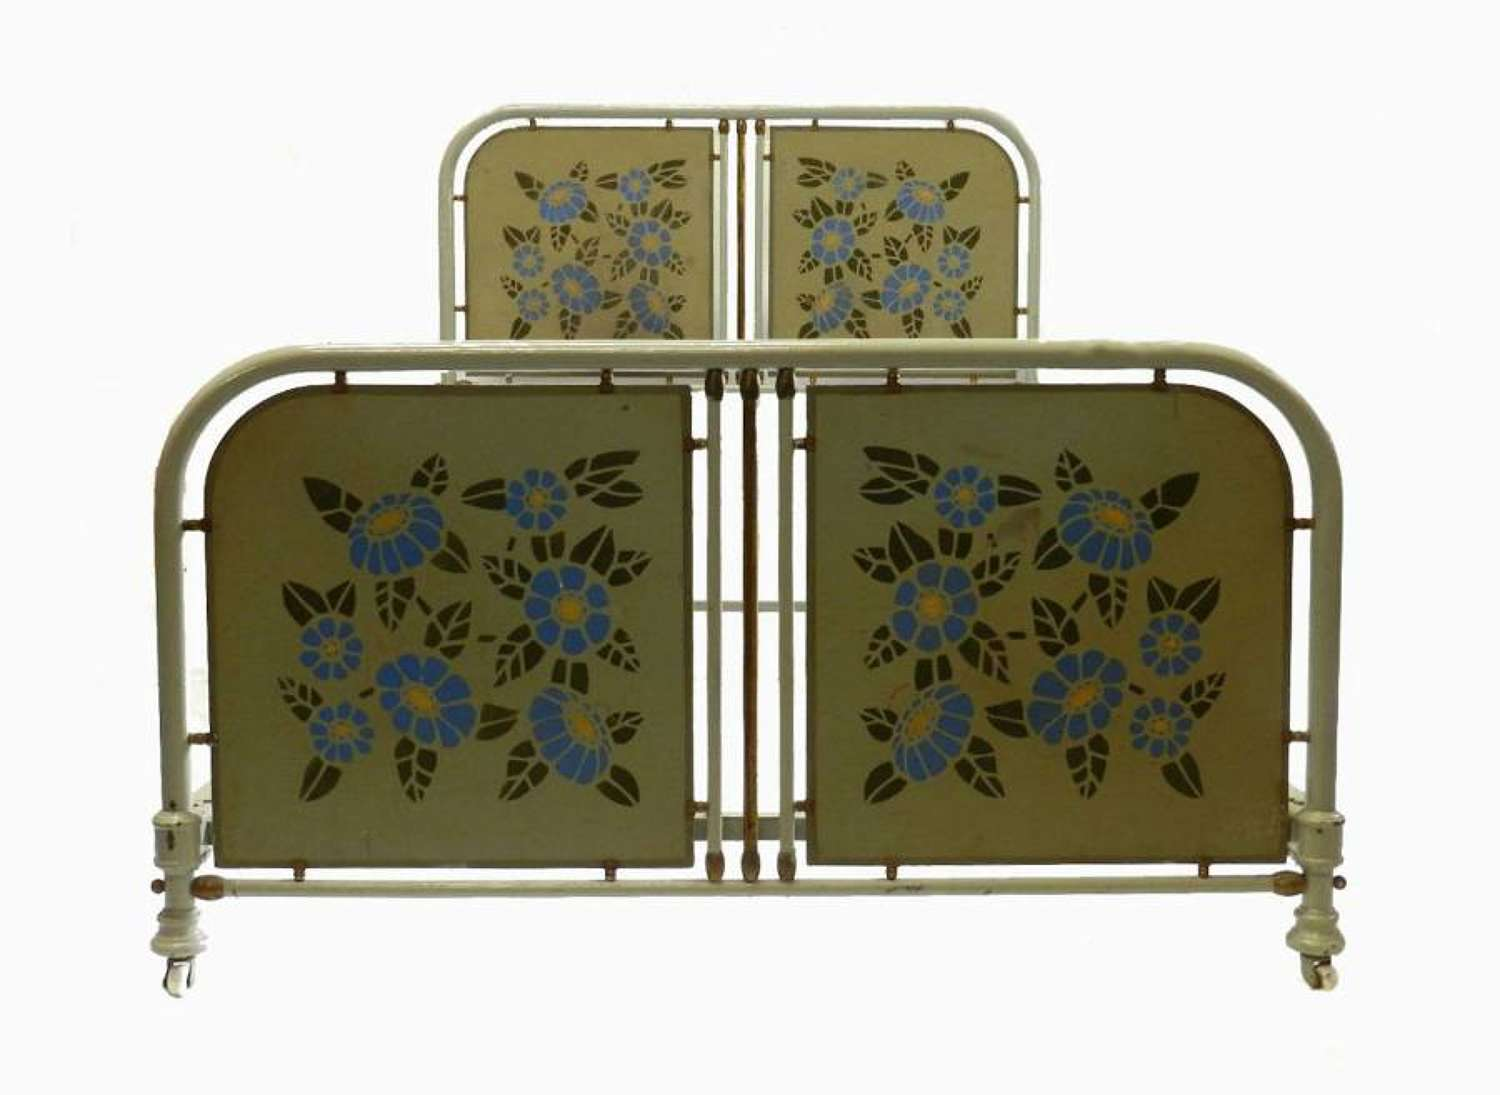 Original Iron & Brass French Art Deco Large Single 4ft or Childs Bed + Base